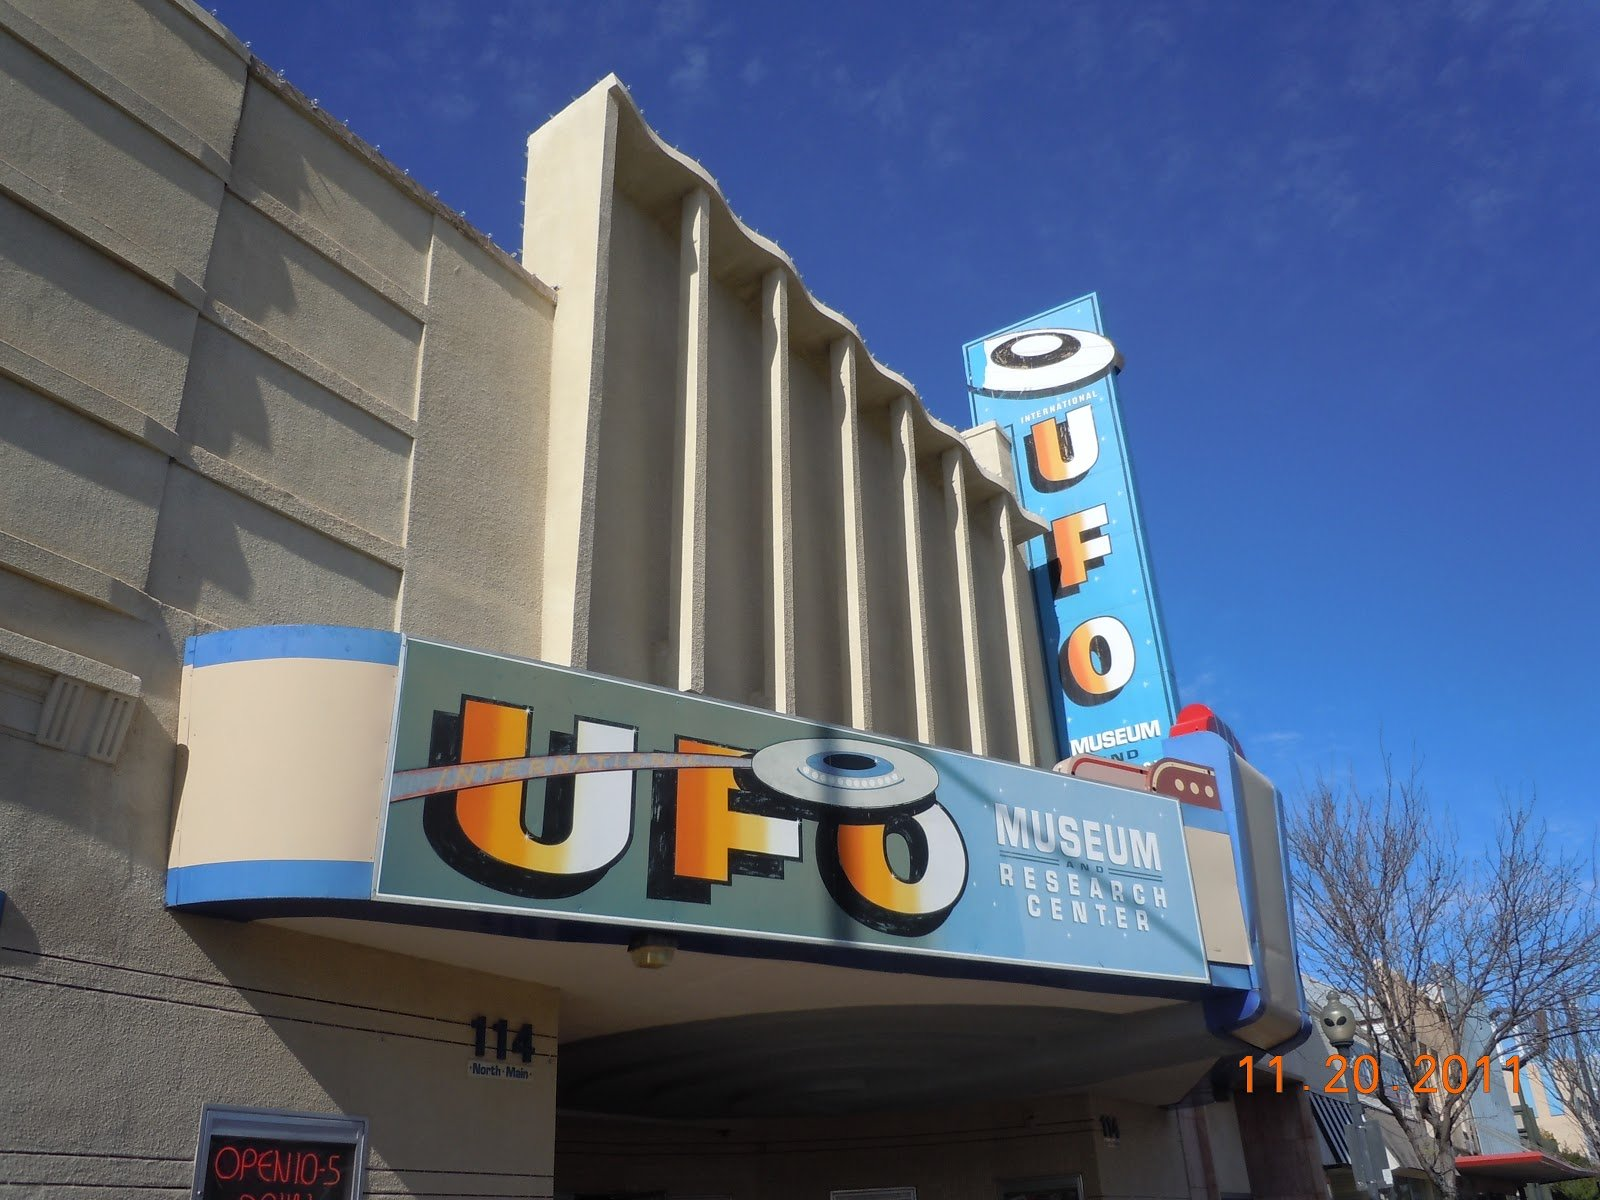 The museum is located in a former theater in downtown Roswell.